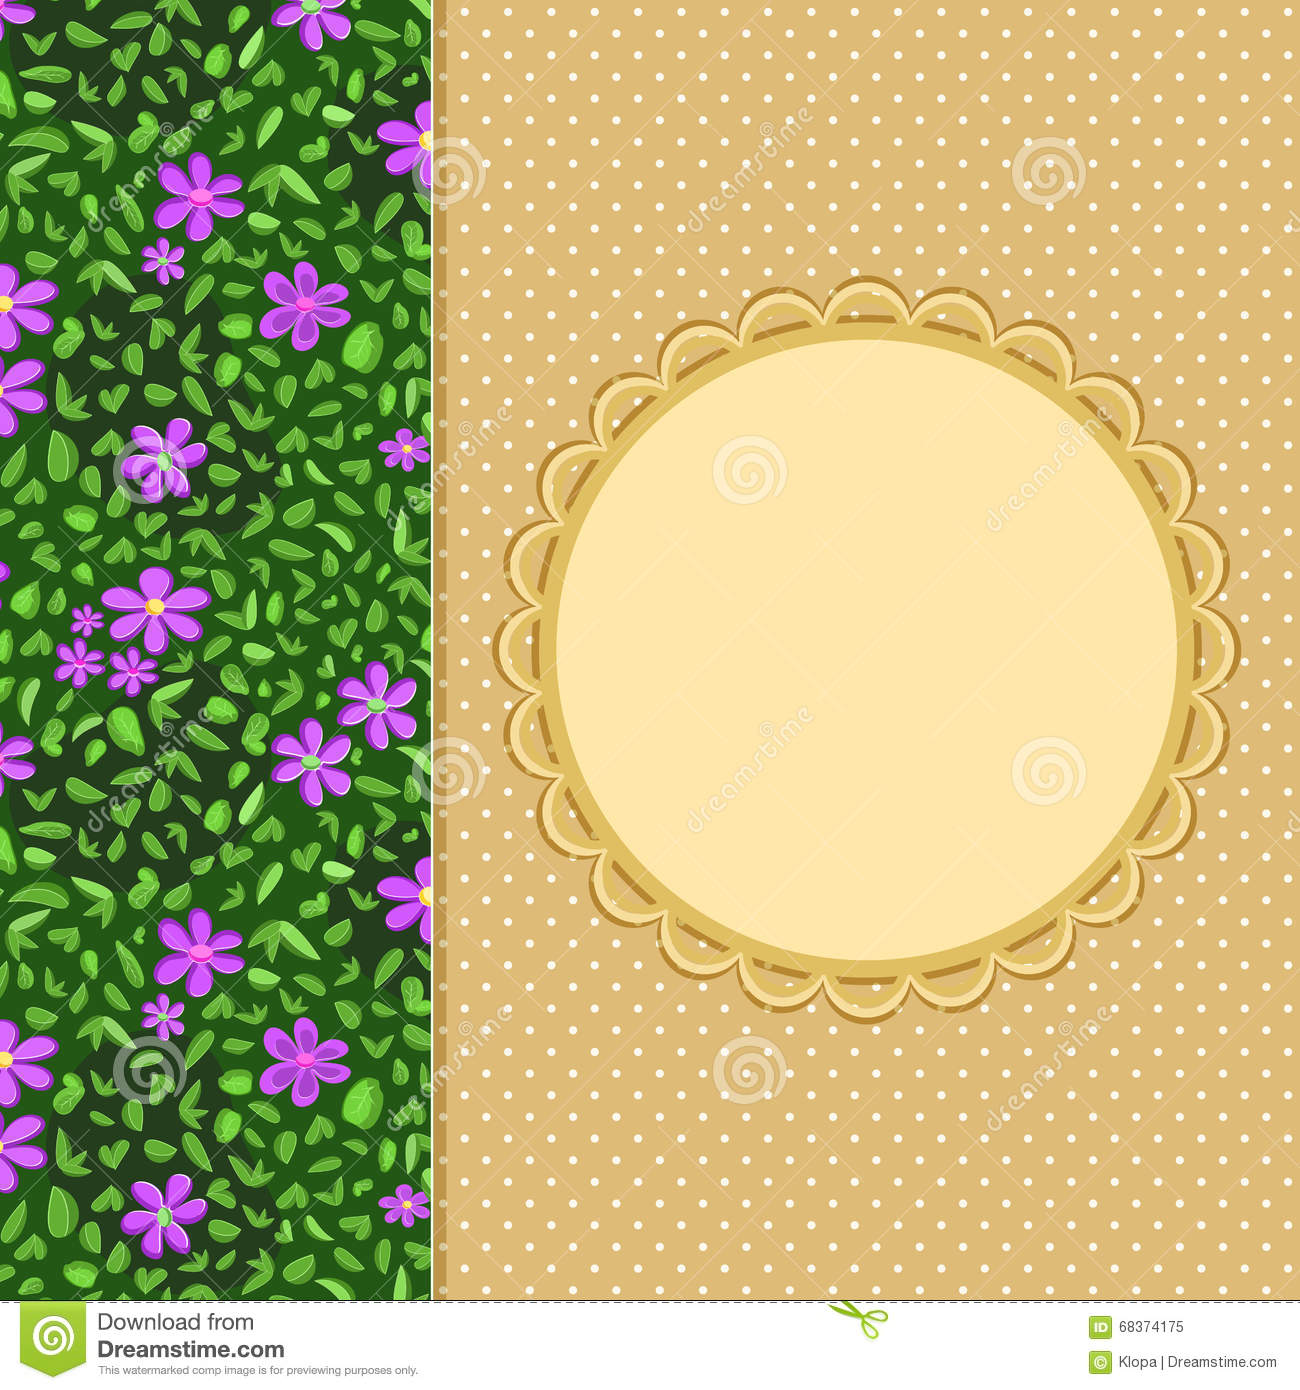 Flower invitation card with round label stock vector illustration flower invitation card with round label stopboris Image collections